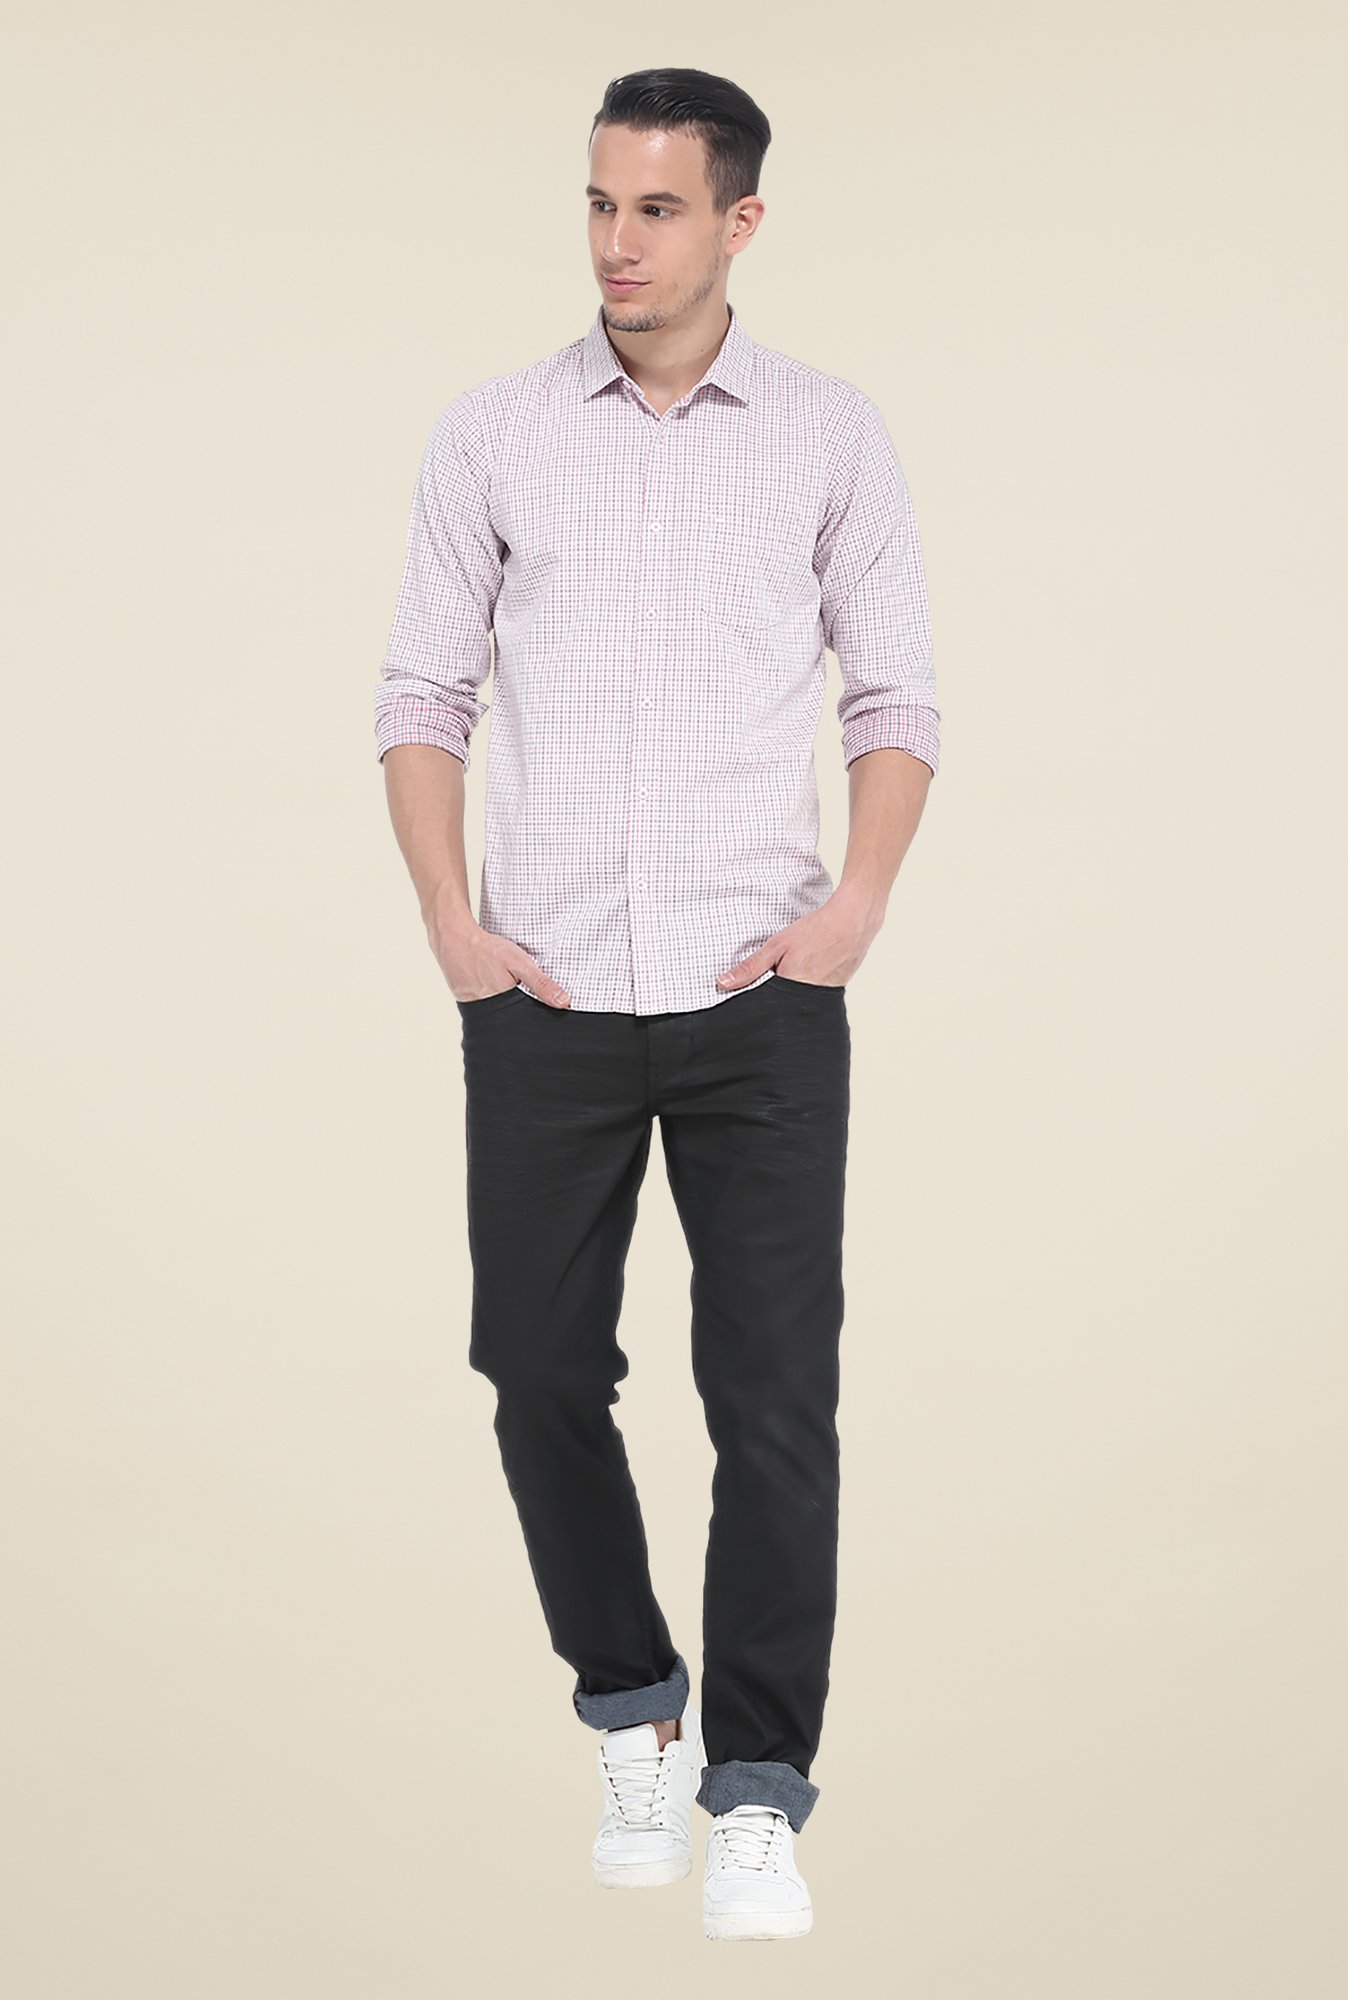 Basics Purple Checks Slim Fit Cotton Shirt